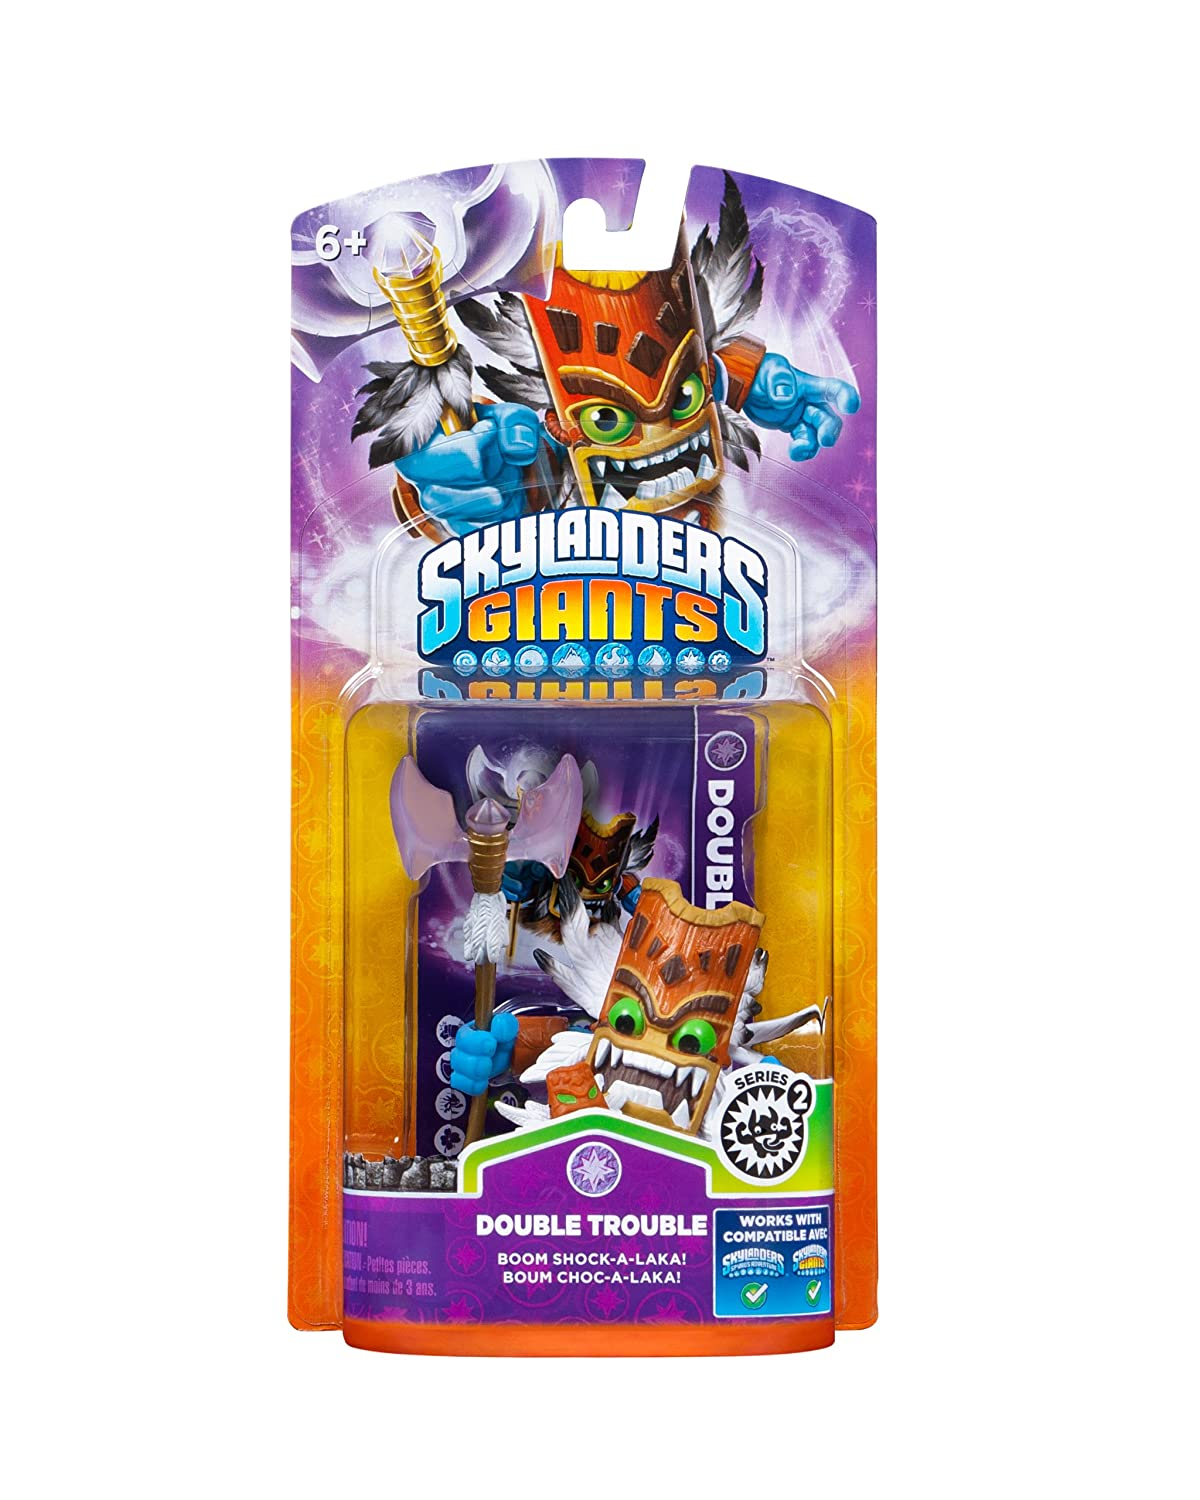 Activision Skylanders Giants Single Character Pack Core Series 2